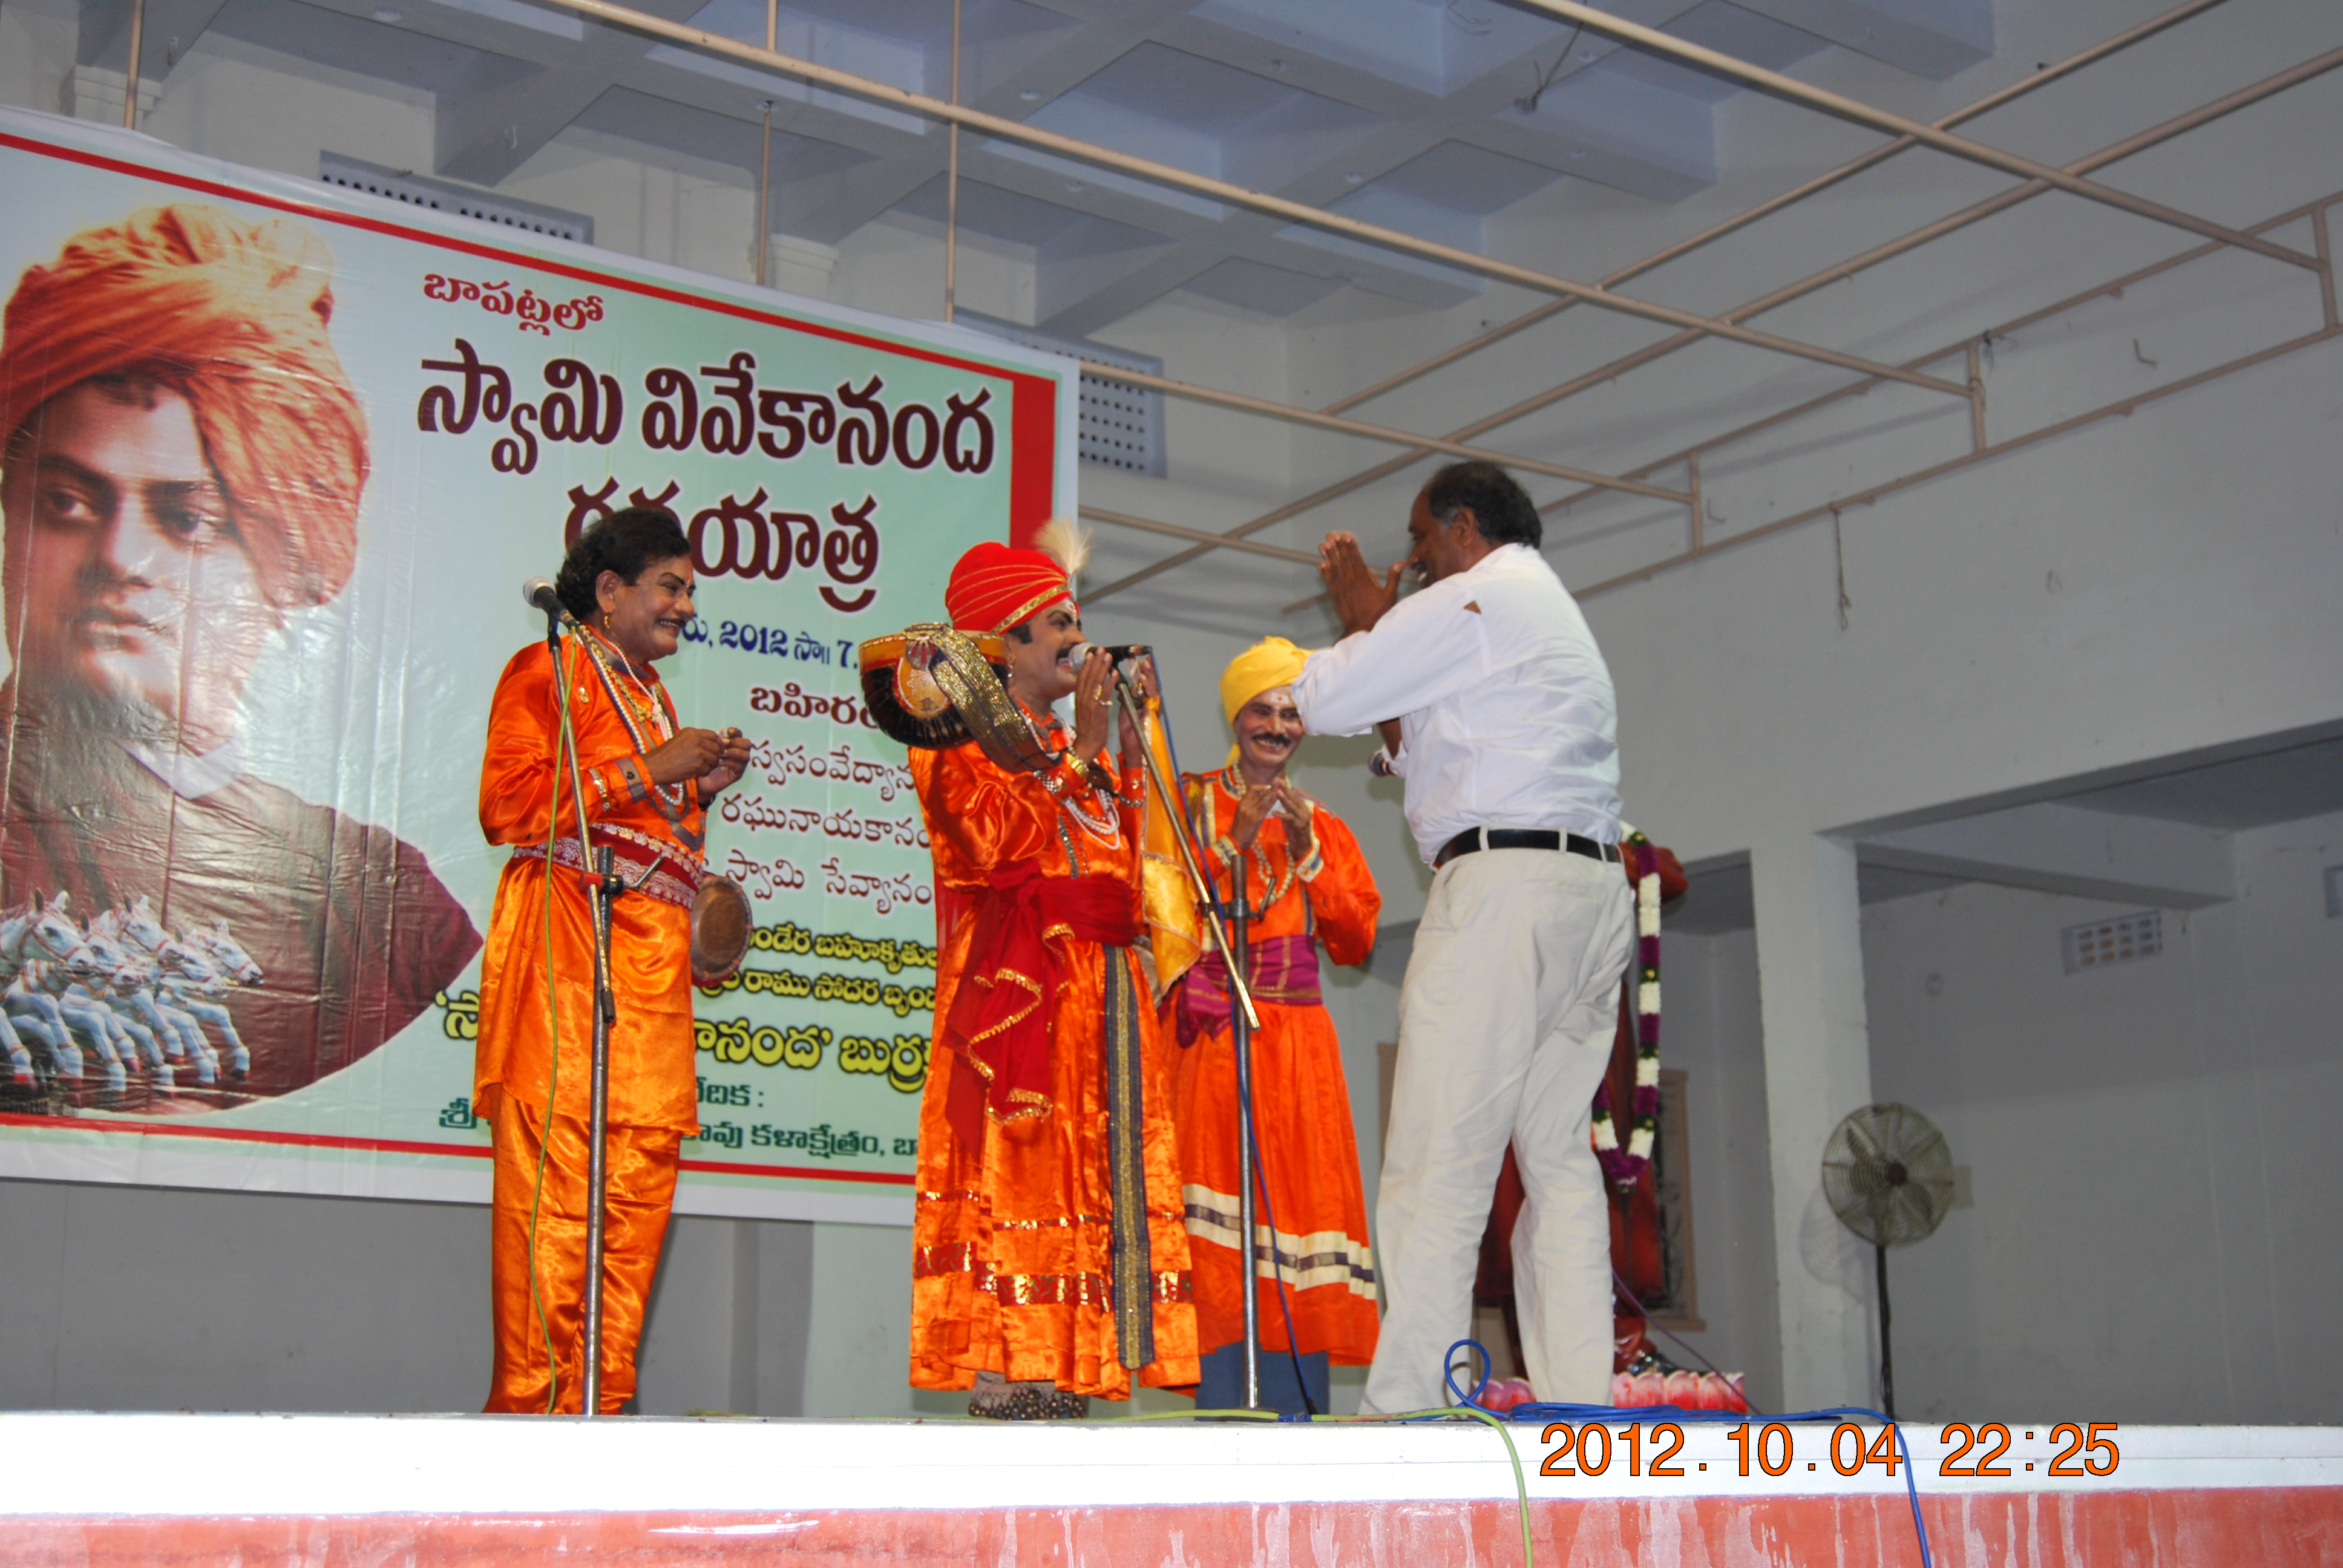 Sri G Ravindra babu fecilitating the artists